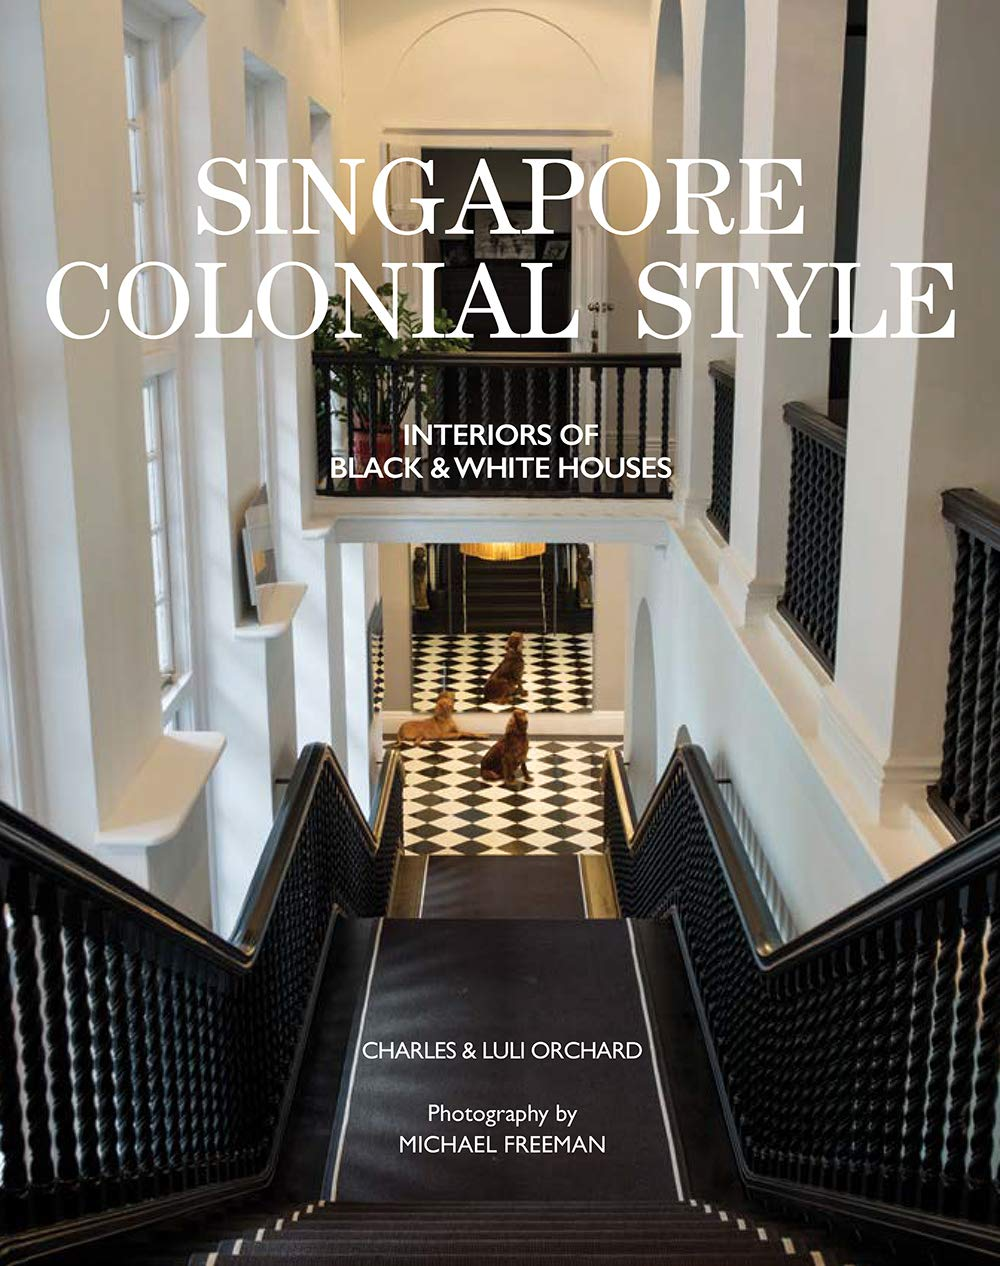 Singapore Colonial Style - Interiors of Black and White